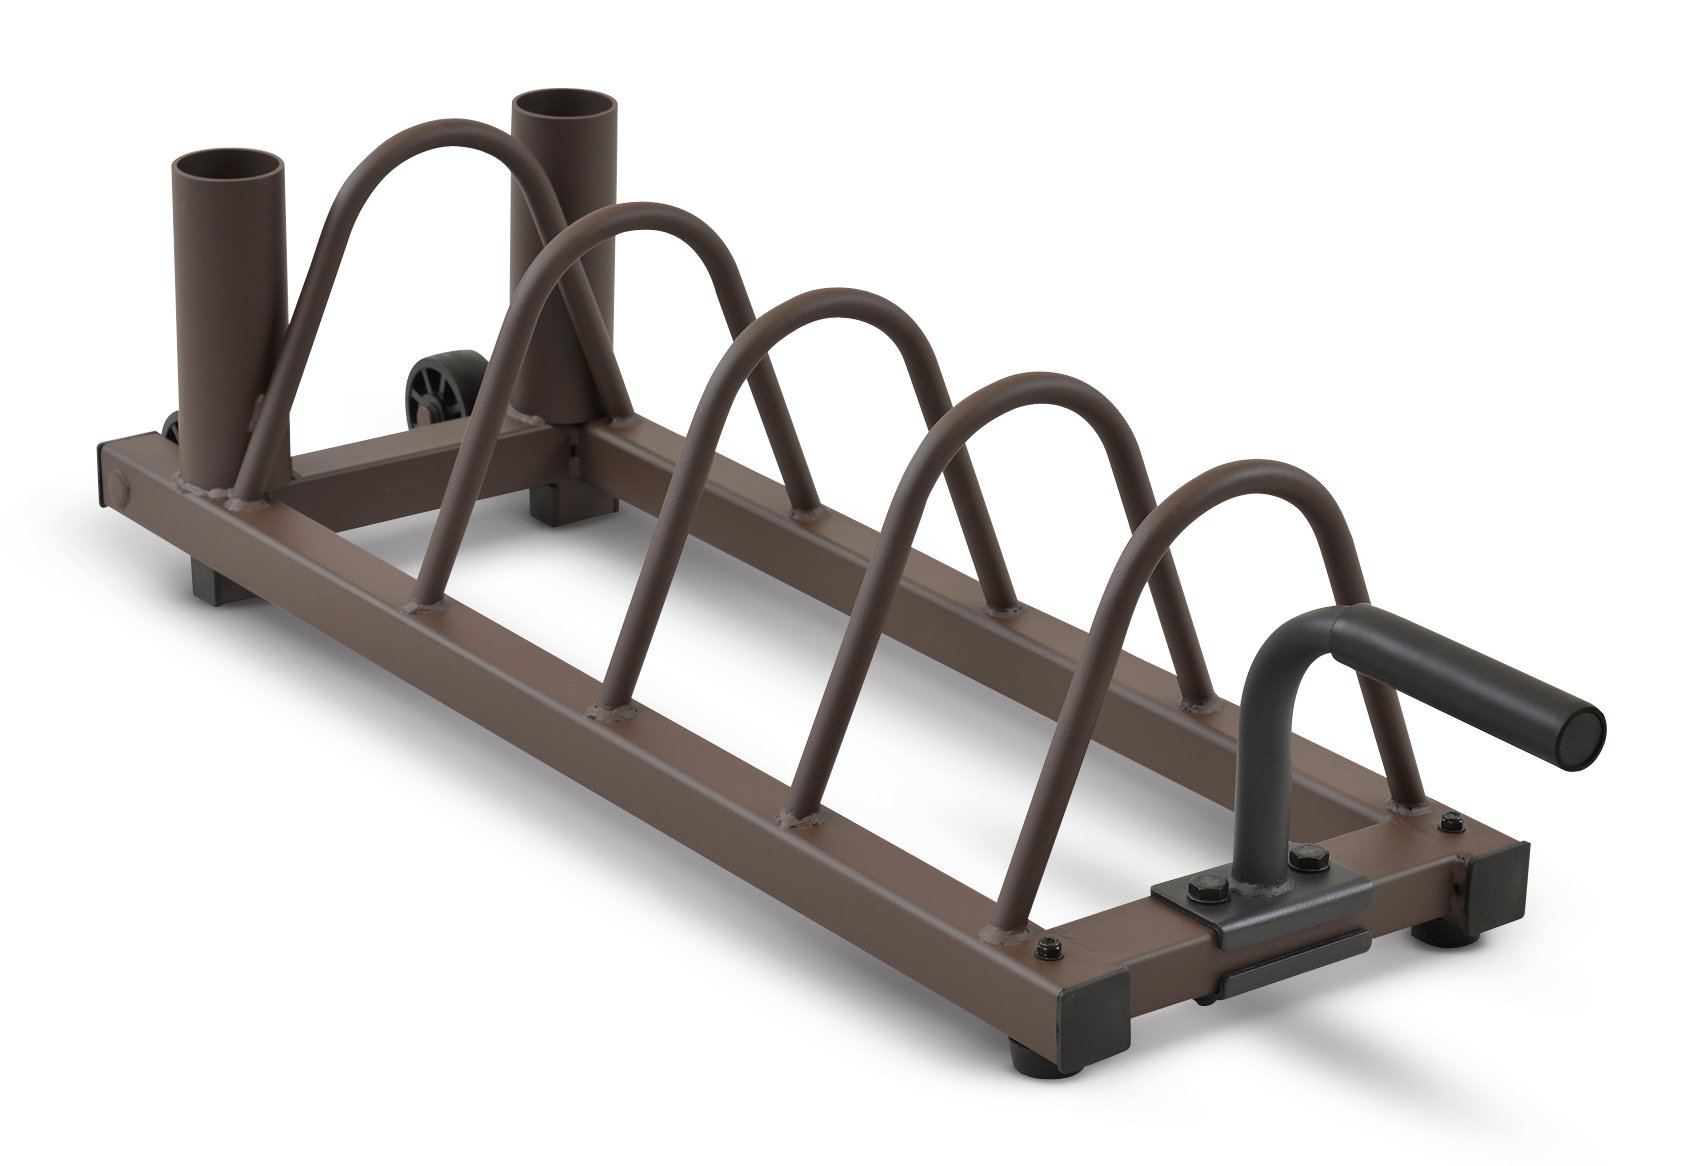 Steelbody Horizontal Plate and Olympic Bar Rack Organizer with Steel Frame and Transport Wheels STB-0130 by Steelbody